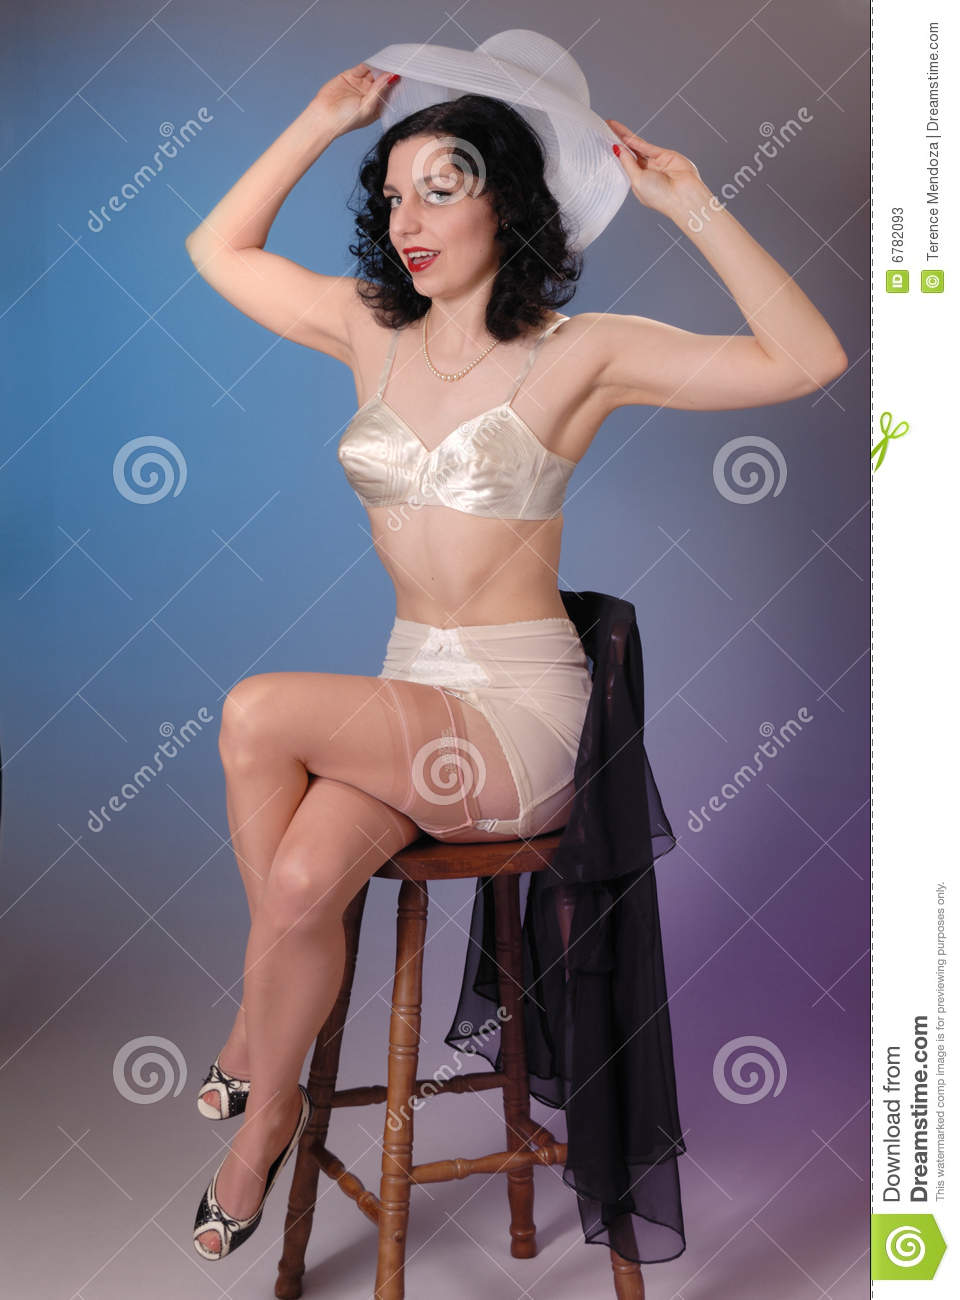 Fifties Cheesecake Girl Stock Image  Image Of Caucasian